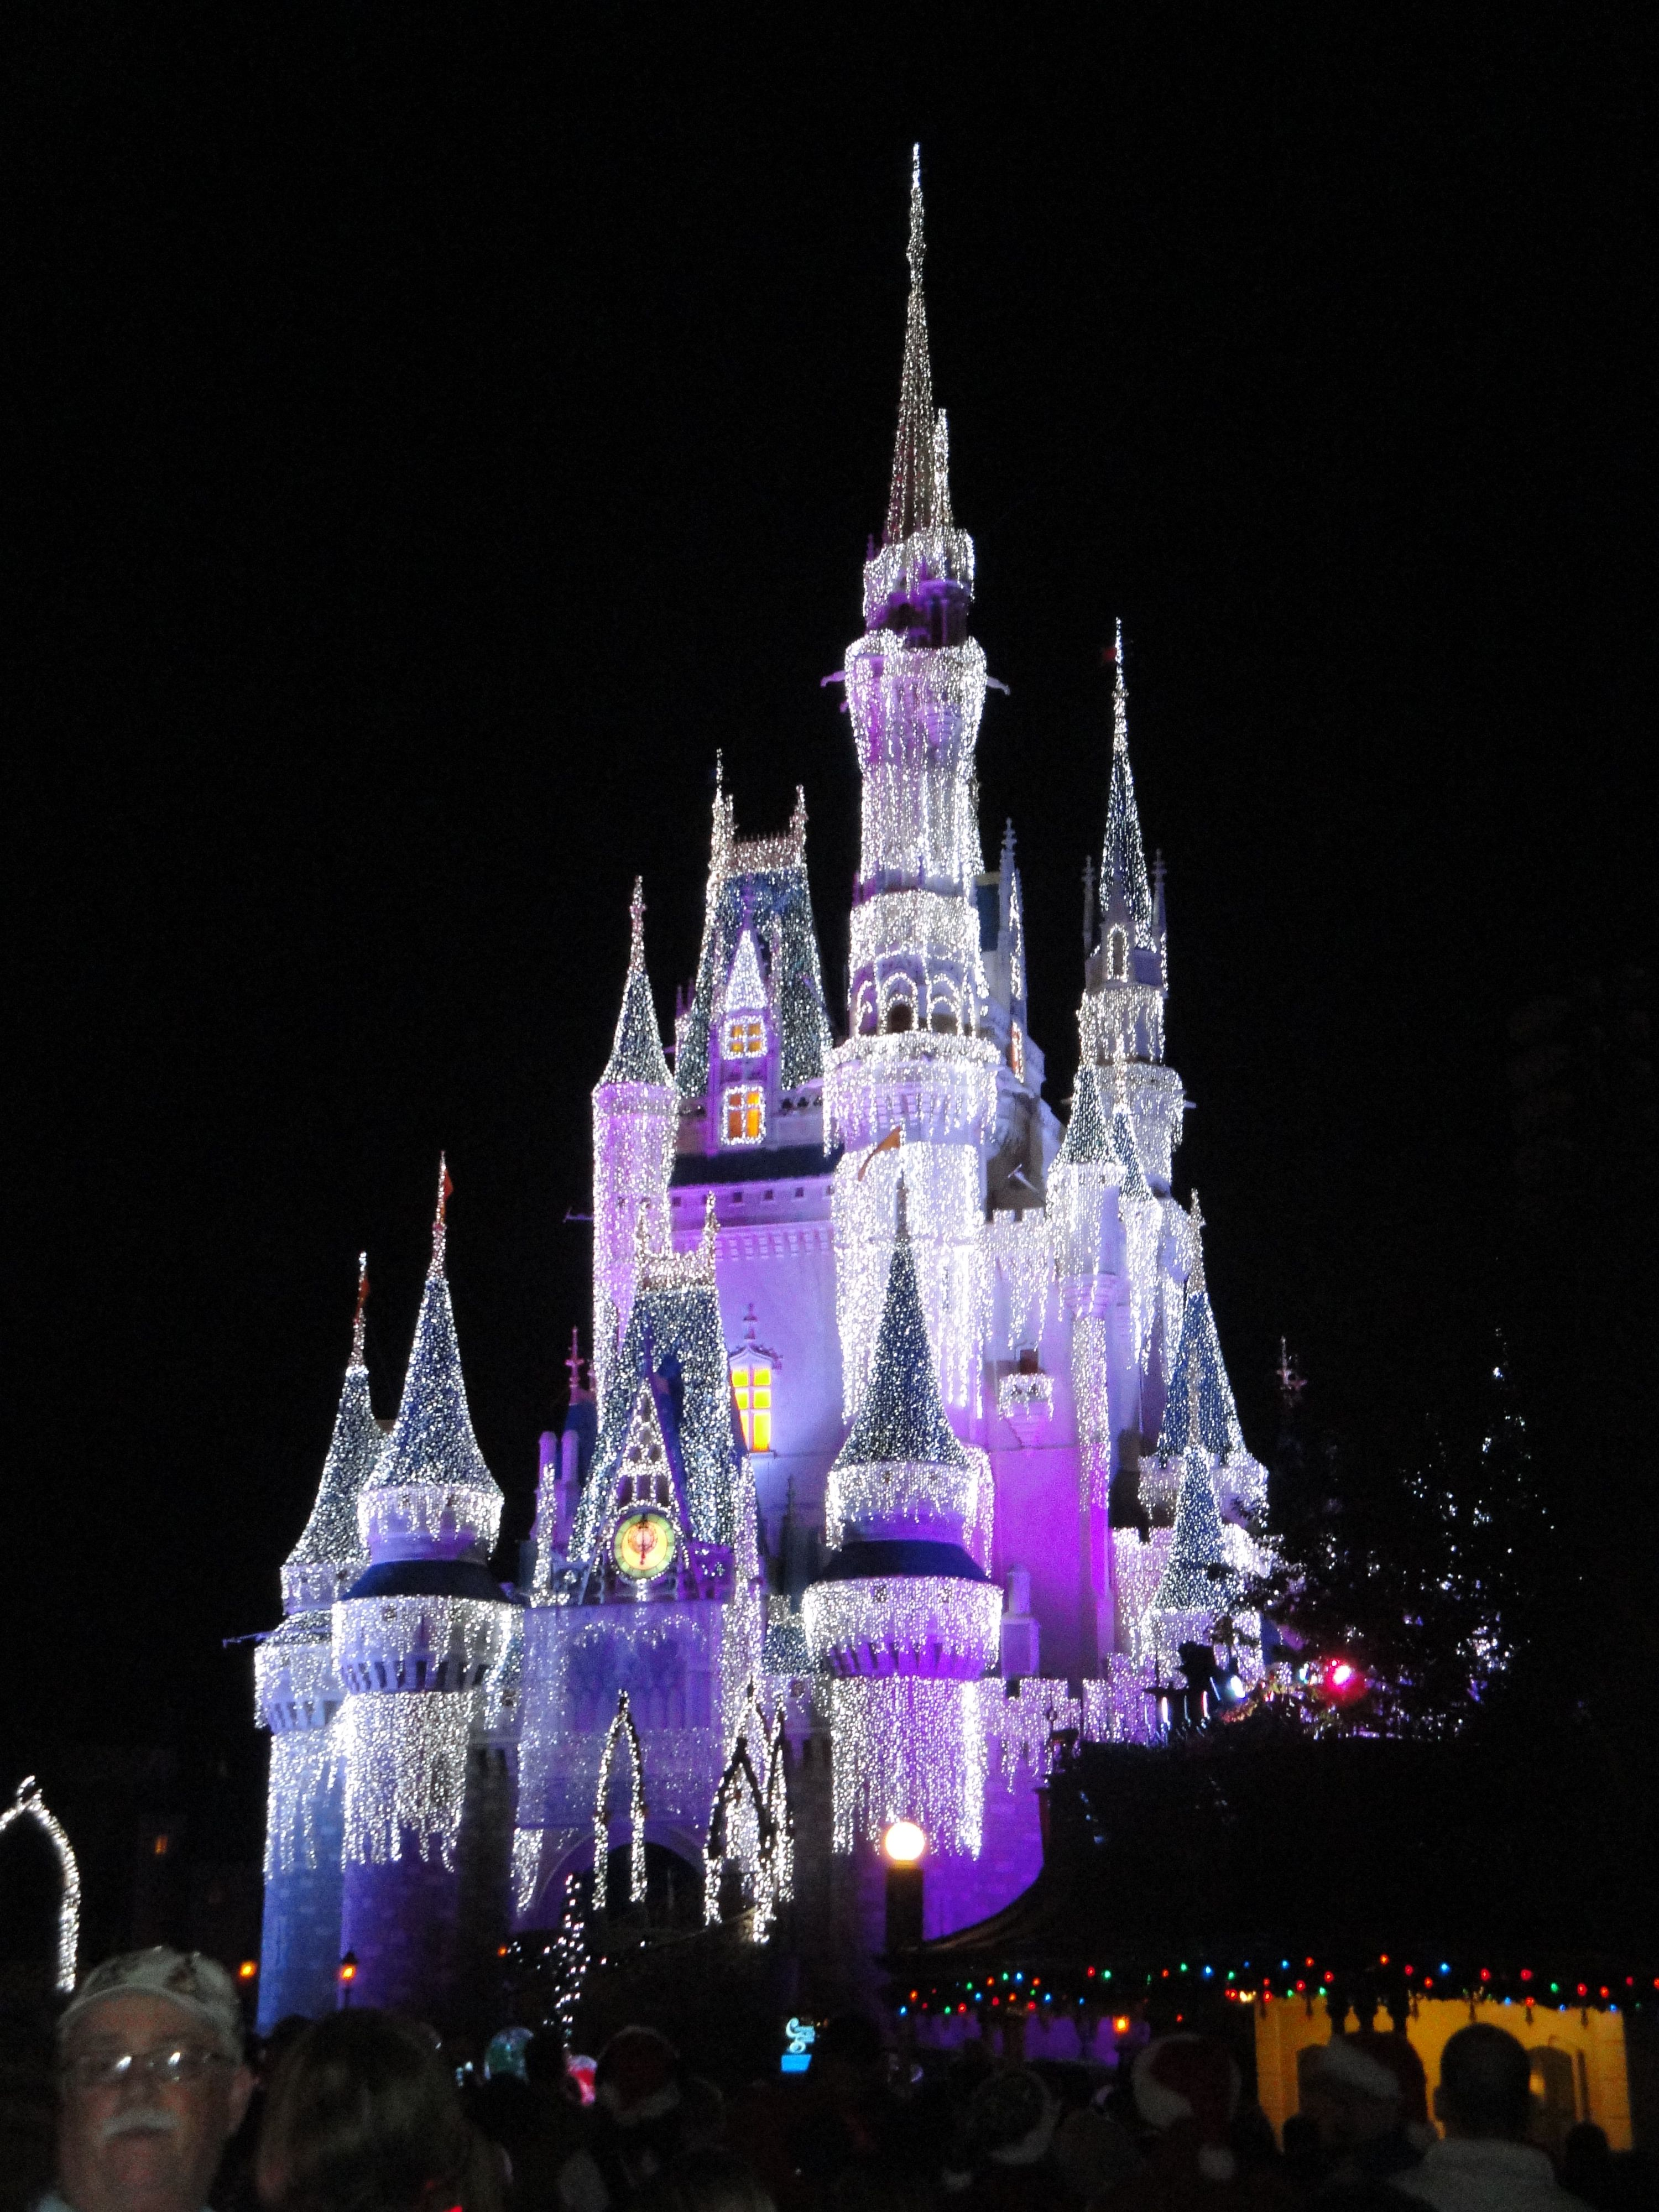 Walt Disney World's Magic Kingdom - Orlando, FL.  The castle was lit up with more than 200,000 icicle lights for 'Mickey's Very Merry Christmas Party'